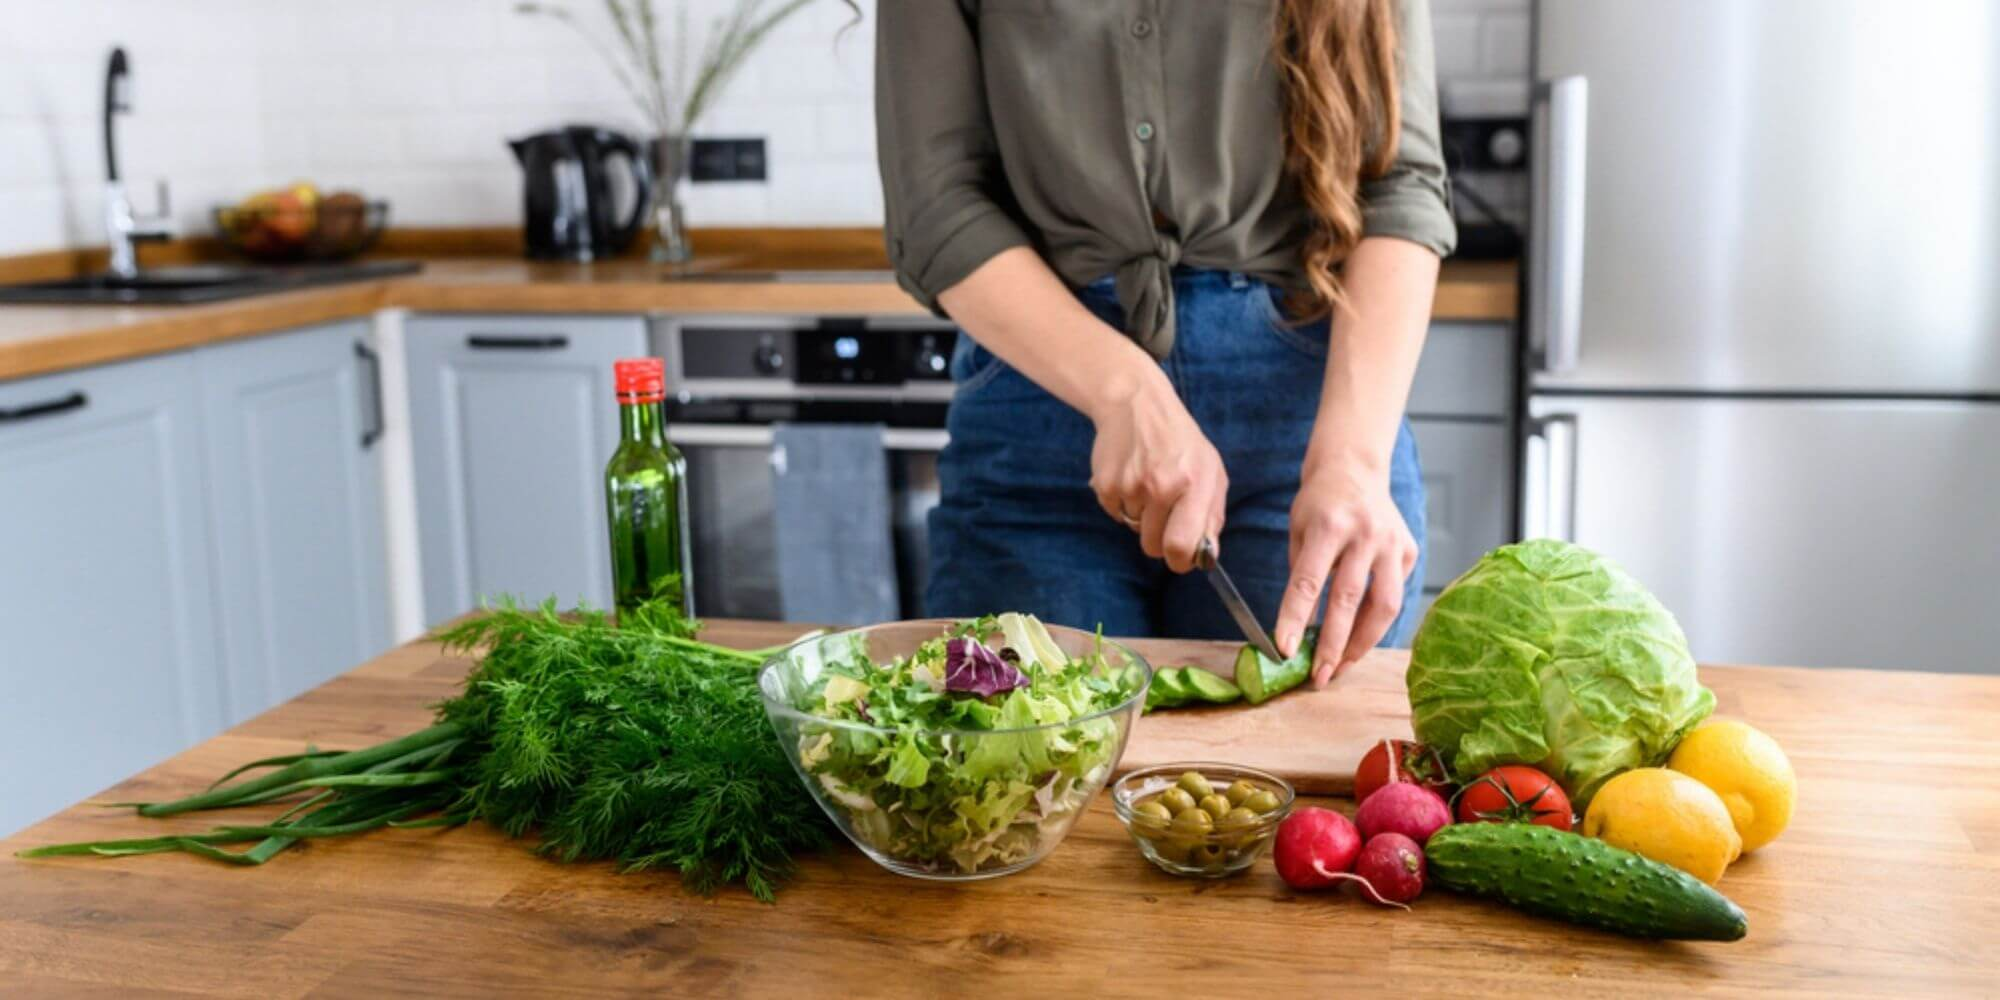 Woman slicing cucumbers on a wooden cutting board in a kitchen next to lettuce, olives, tomatoes, and lemons.